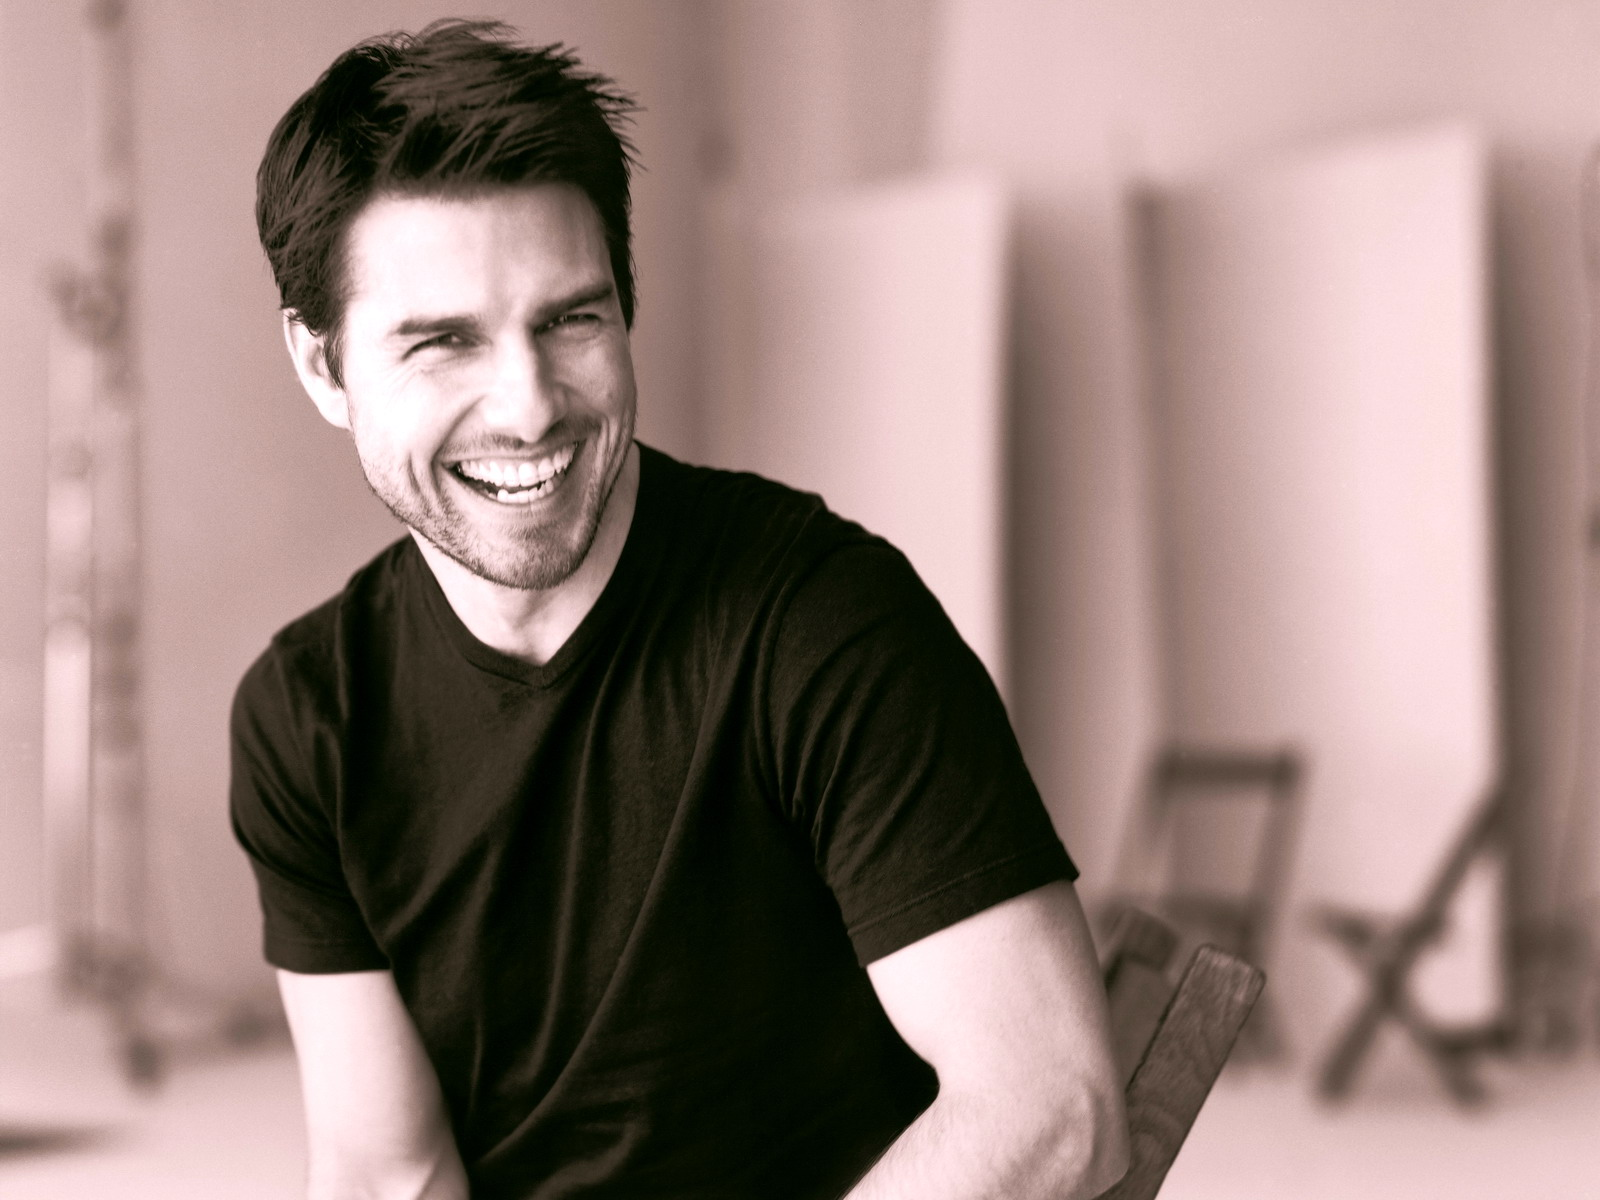 Tom Cruise Wallpapers High Resolution and Quality DownloadTom Cruise 1600x1200